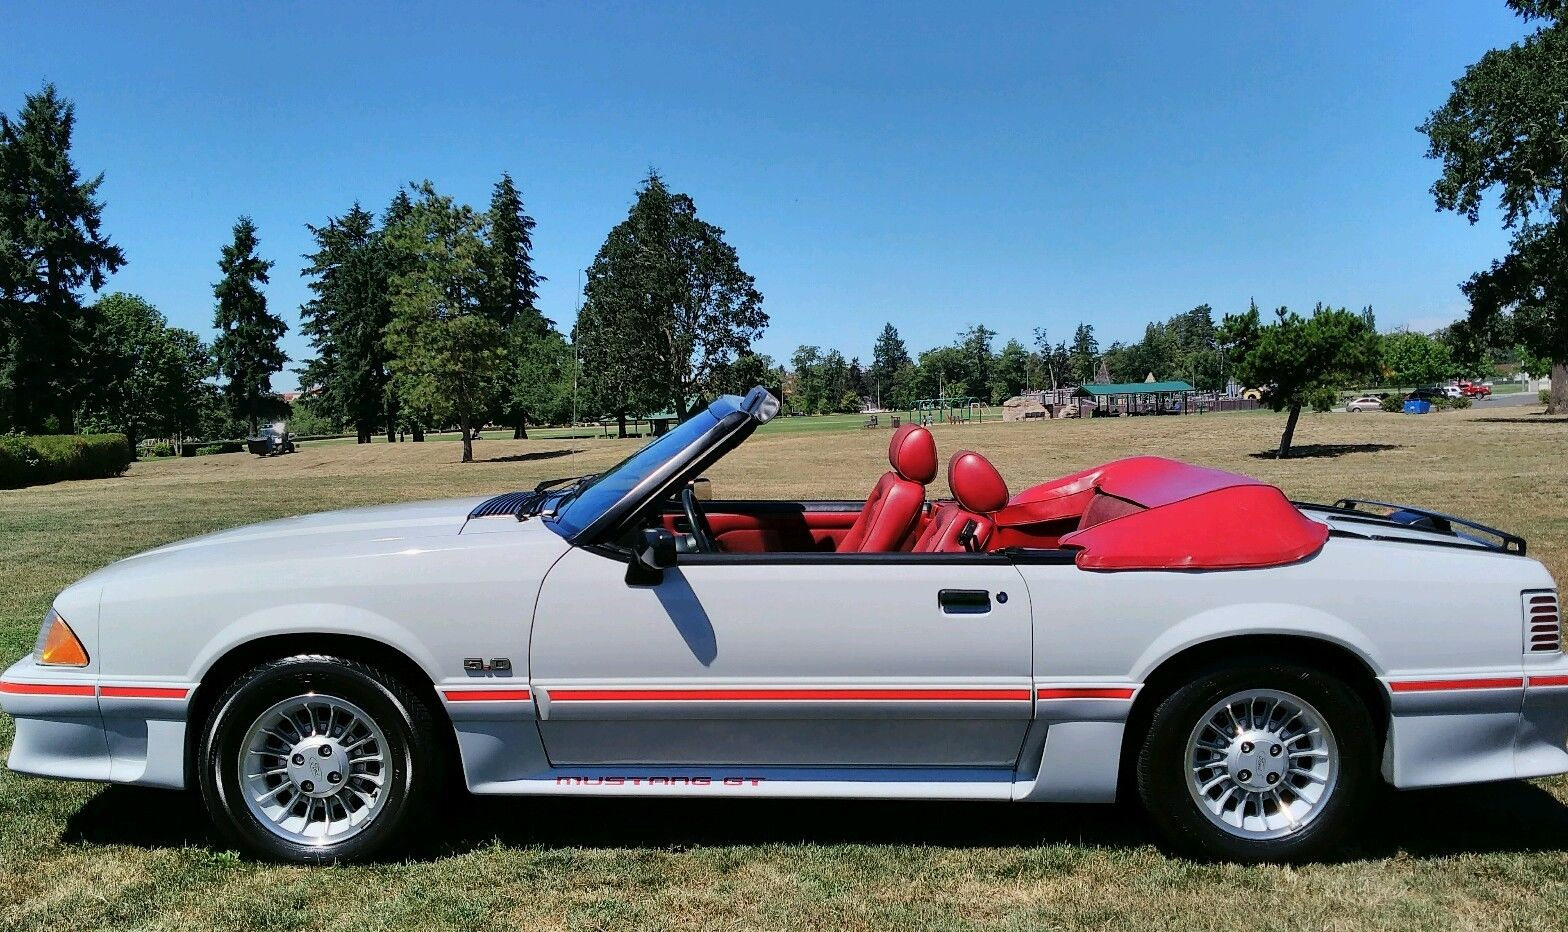 1989 ford mustang cobra gt mustang convertible 5 0 v8 foxbody ultra rare dove gray color with red interior